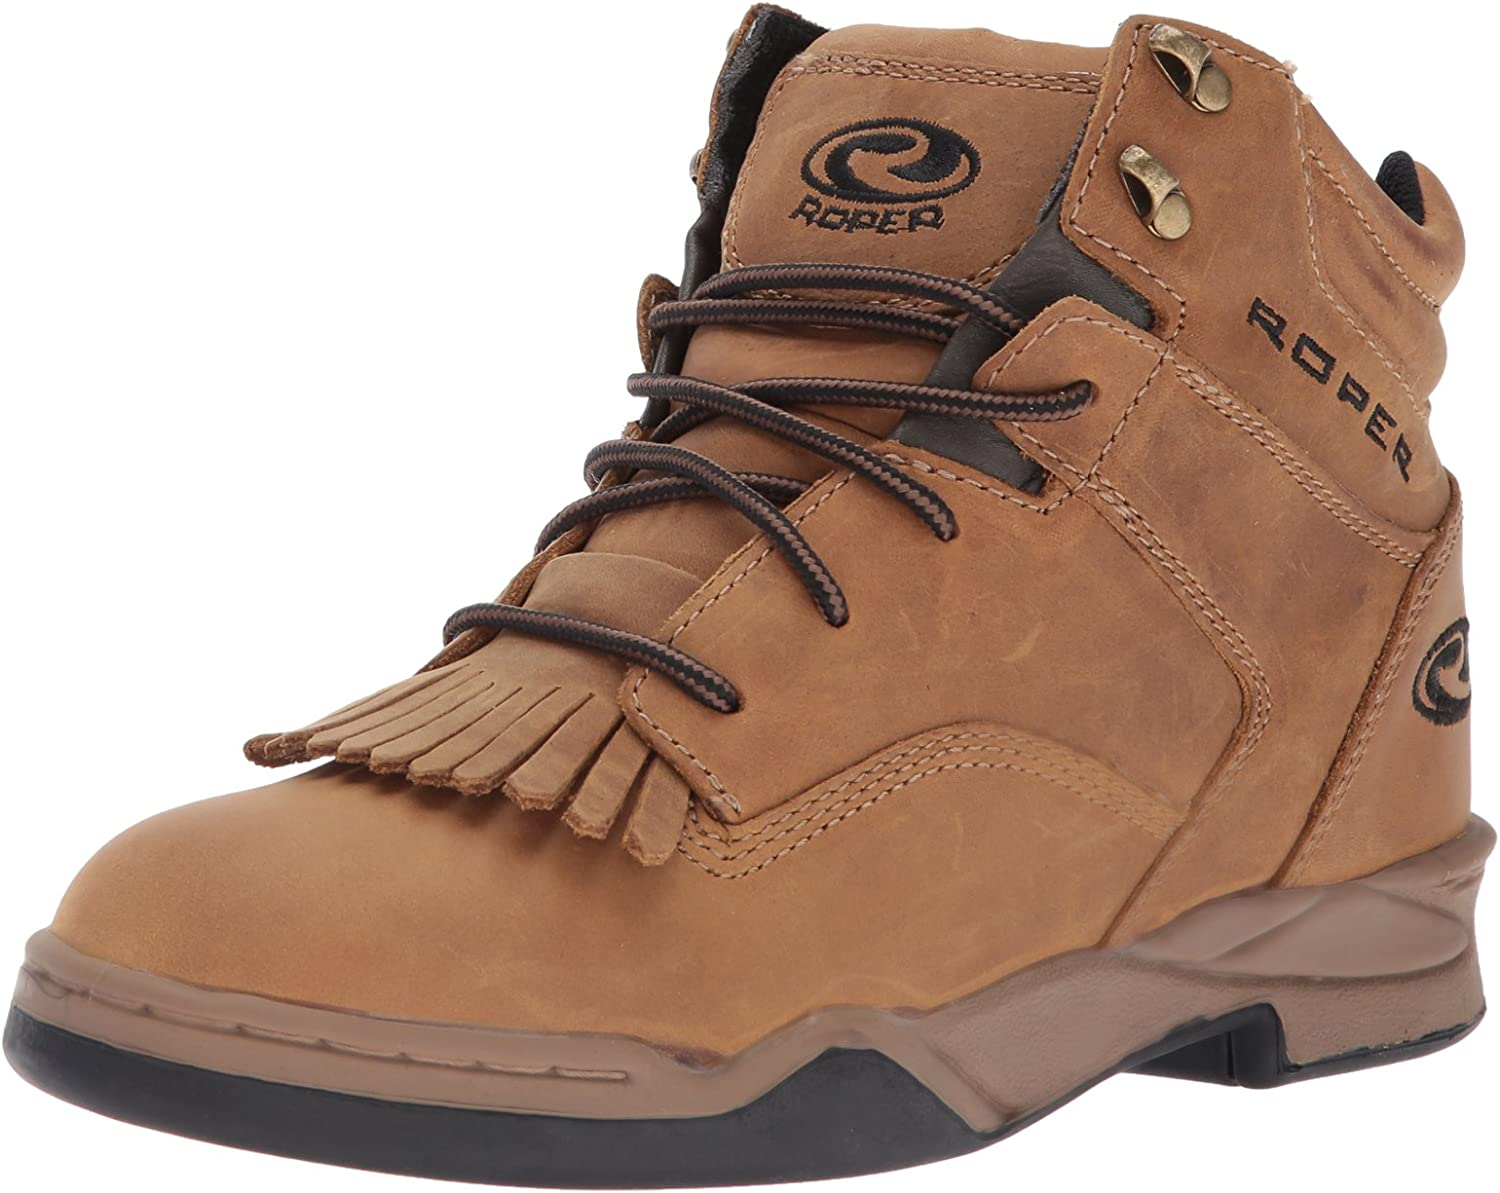 Roper Men s Horseshoe Kiltie Hiking Boot